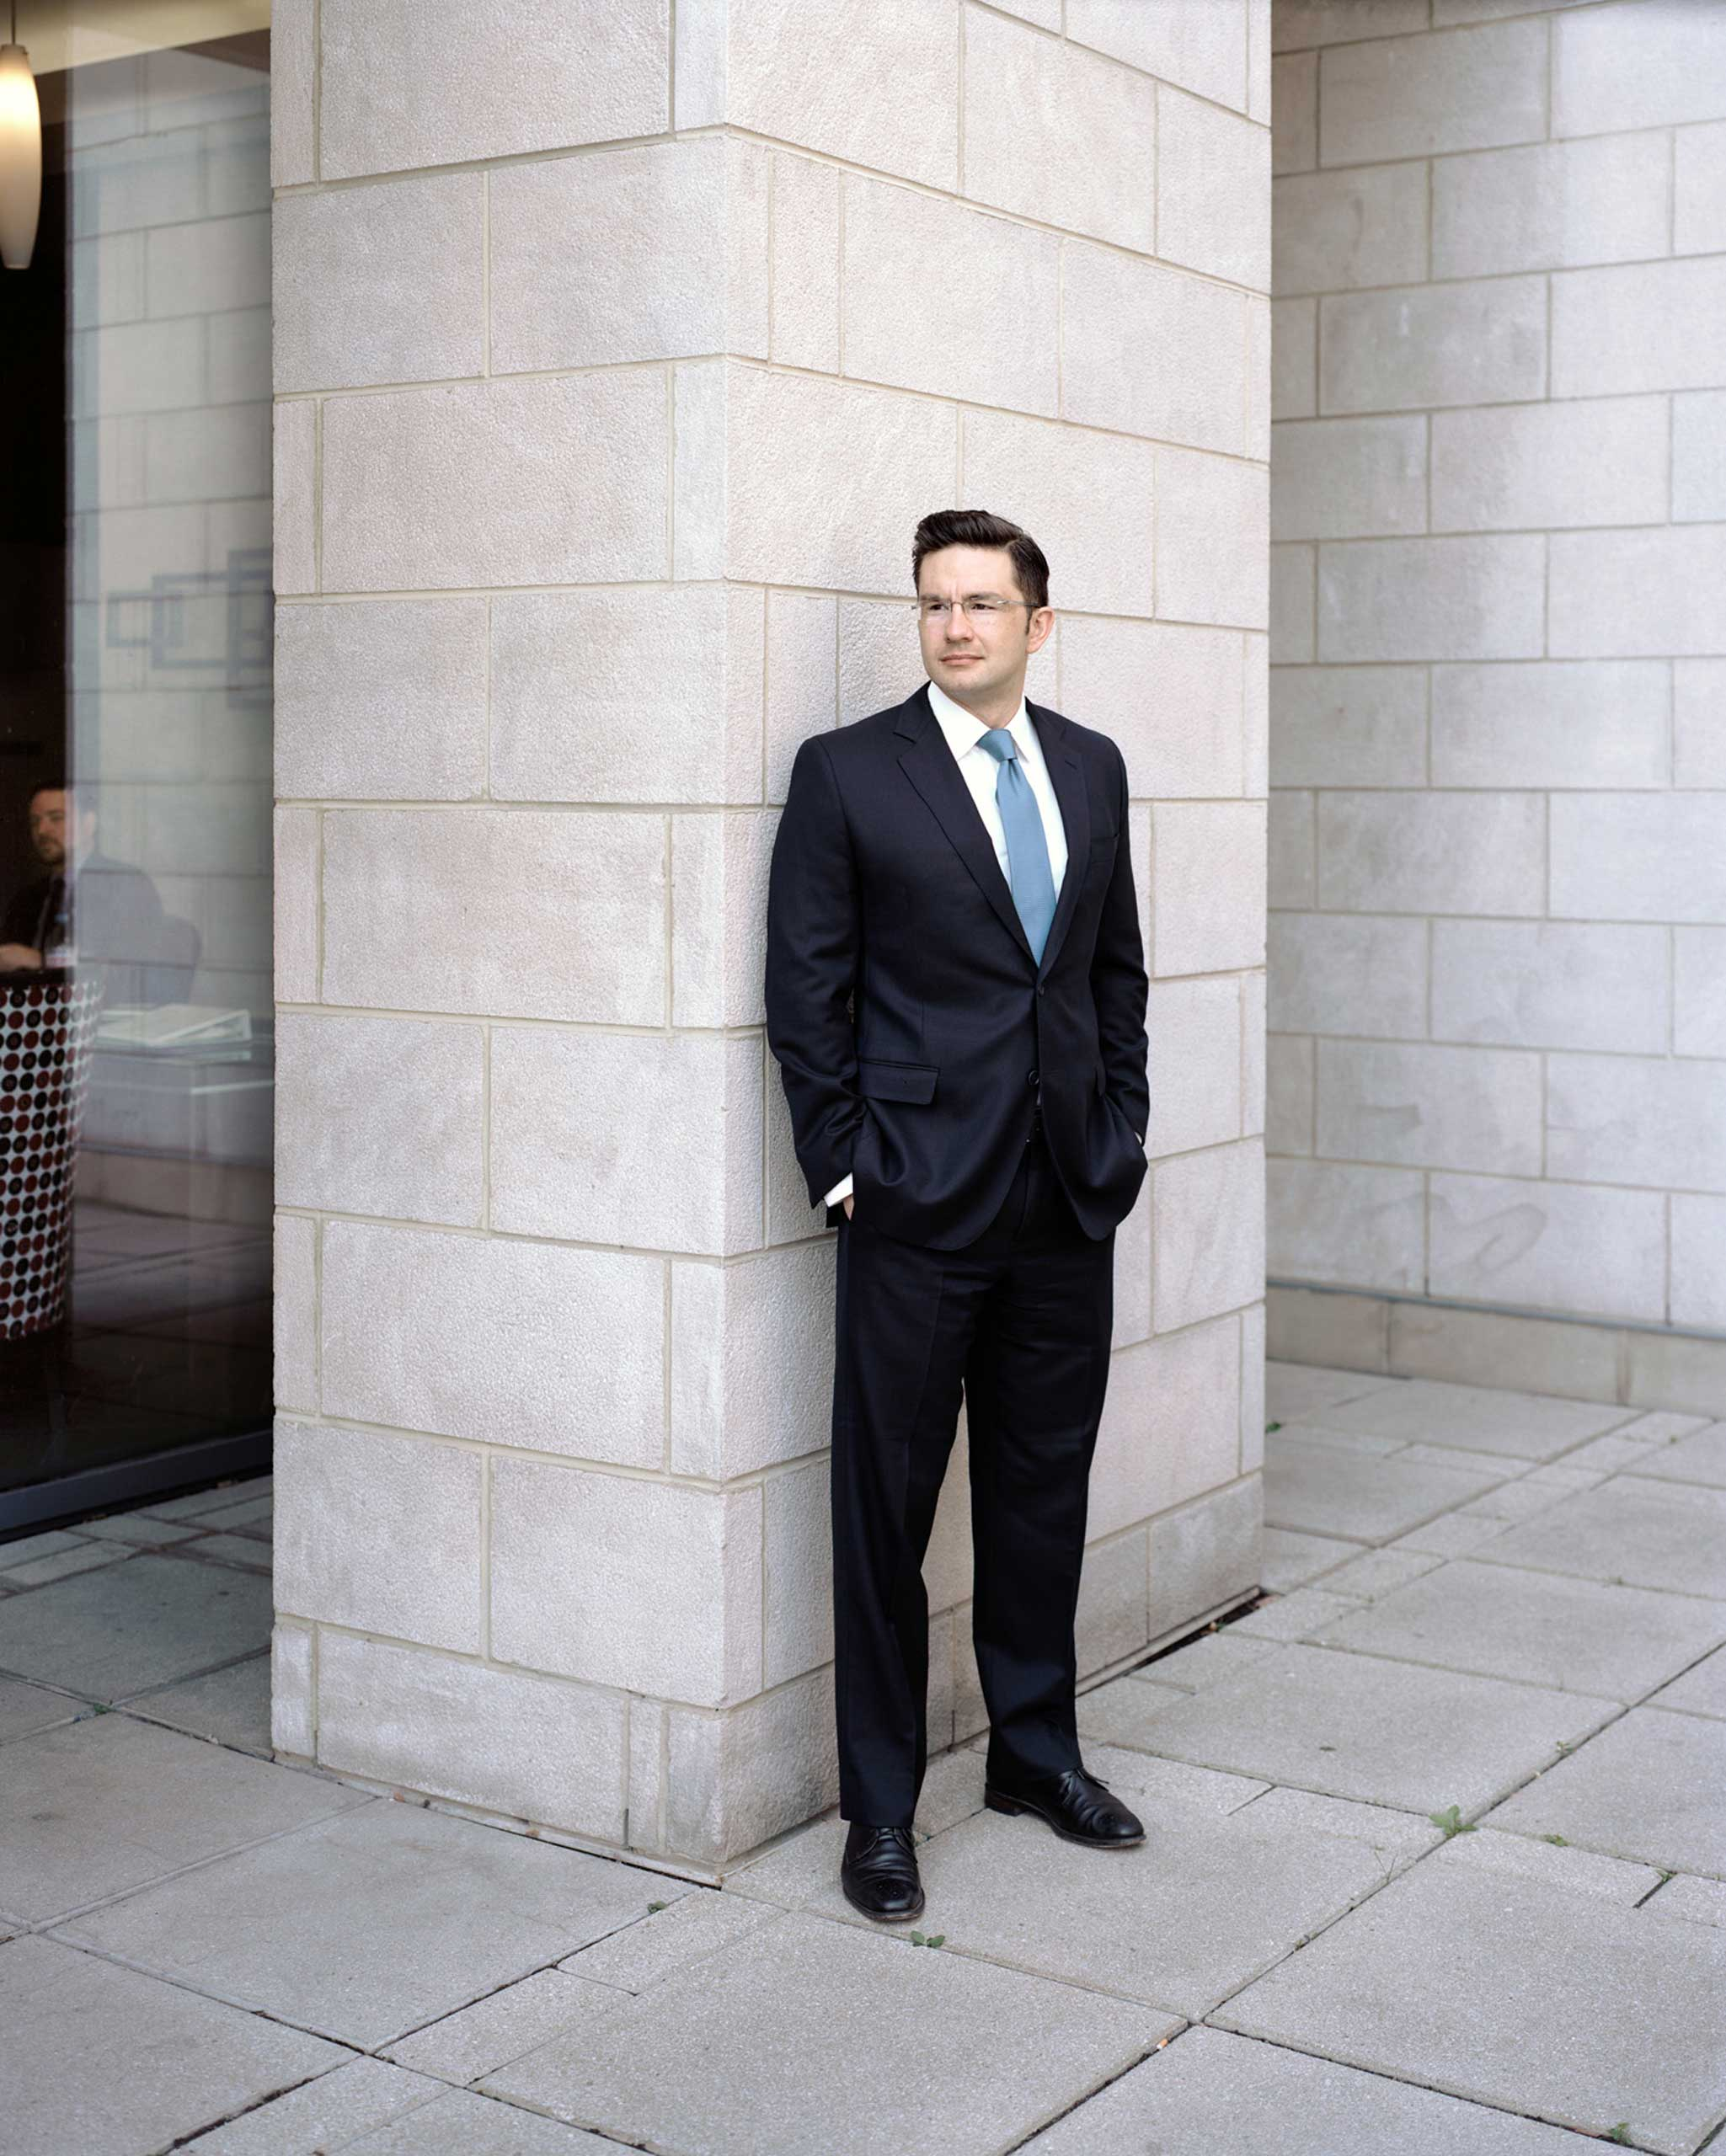 Pierre Poilievre, Federal Minister representing Ottawa